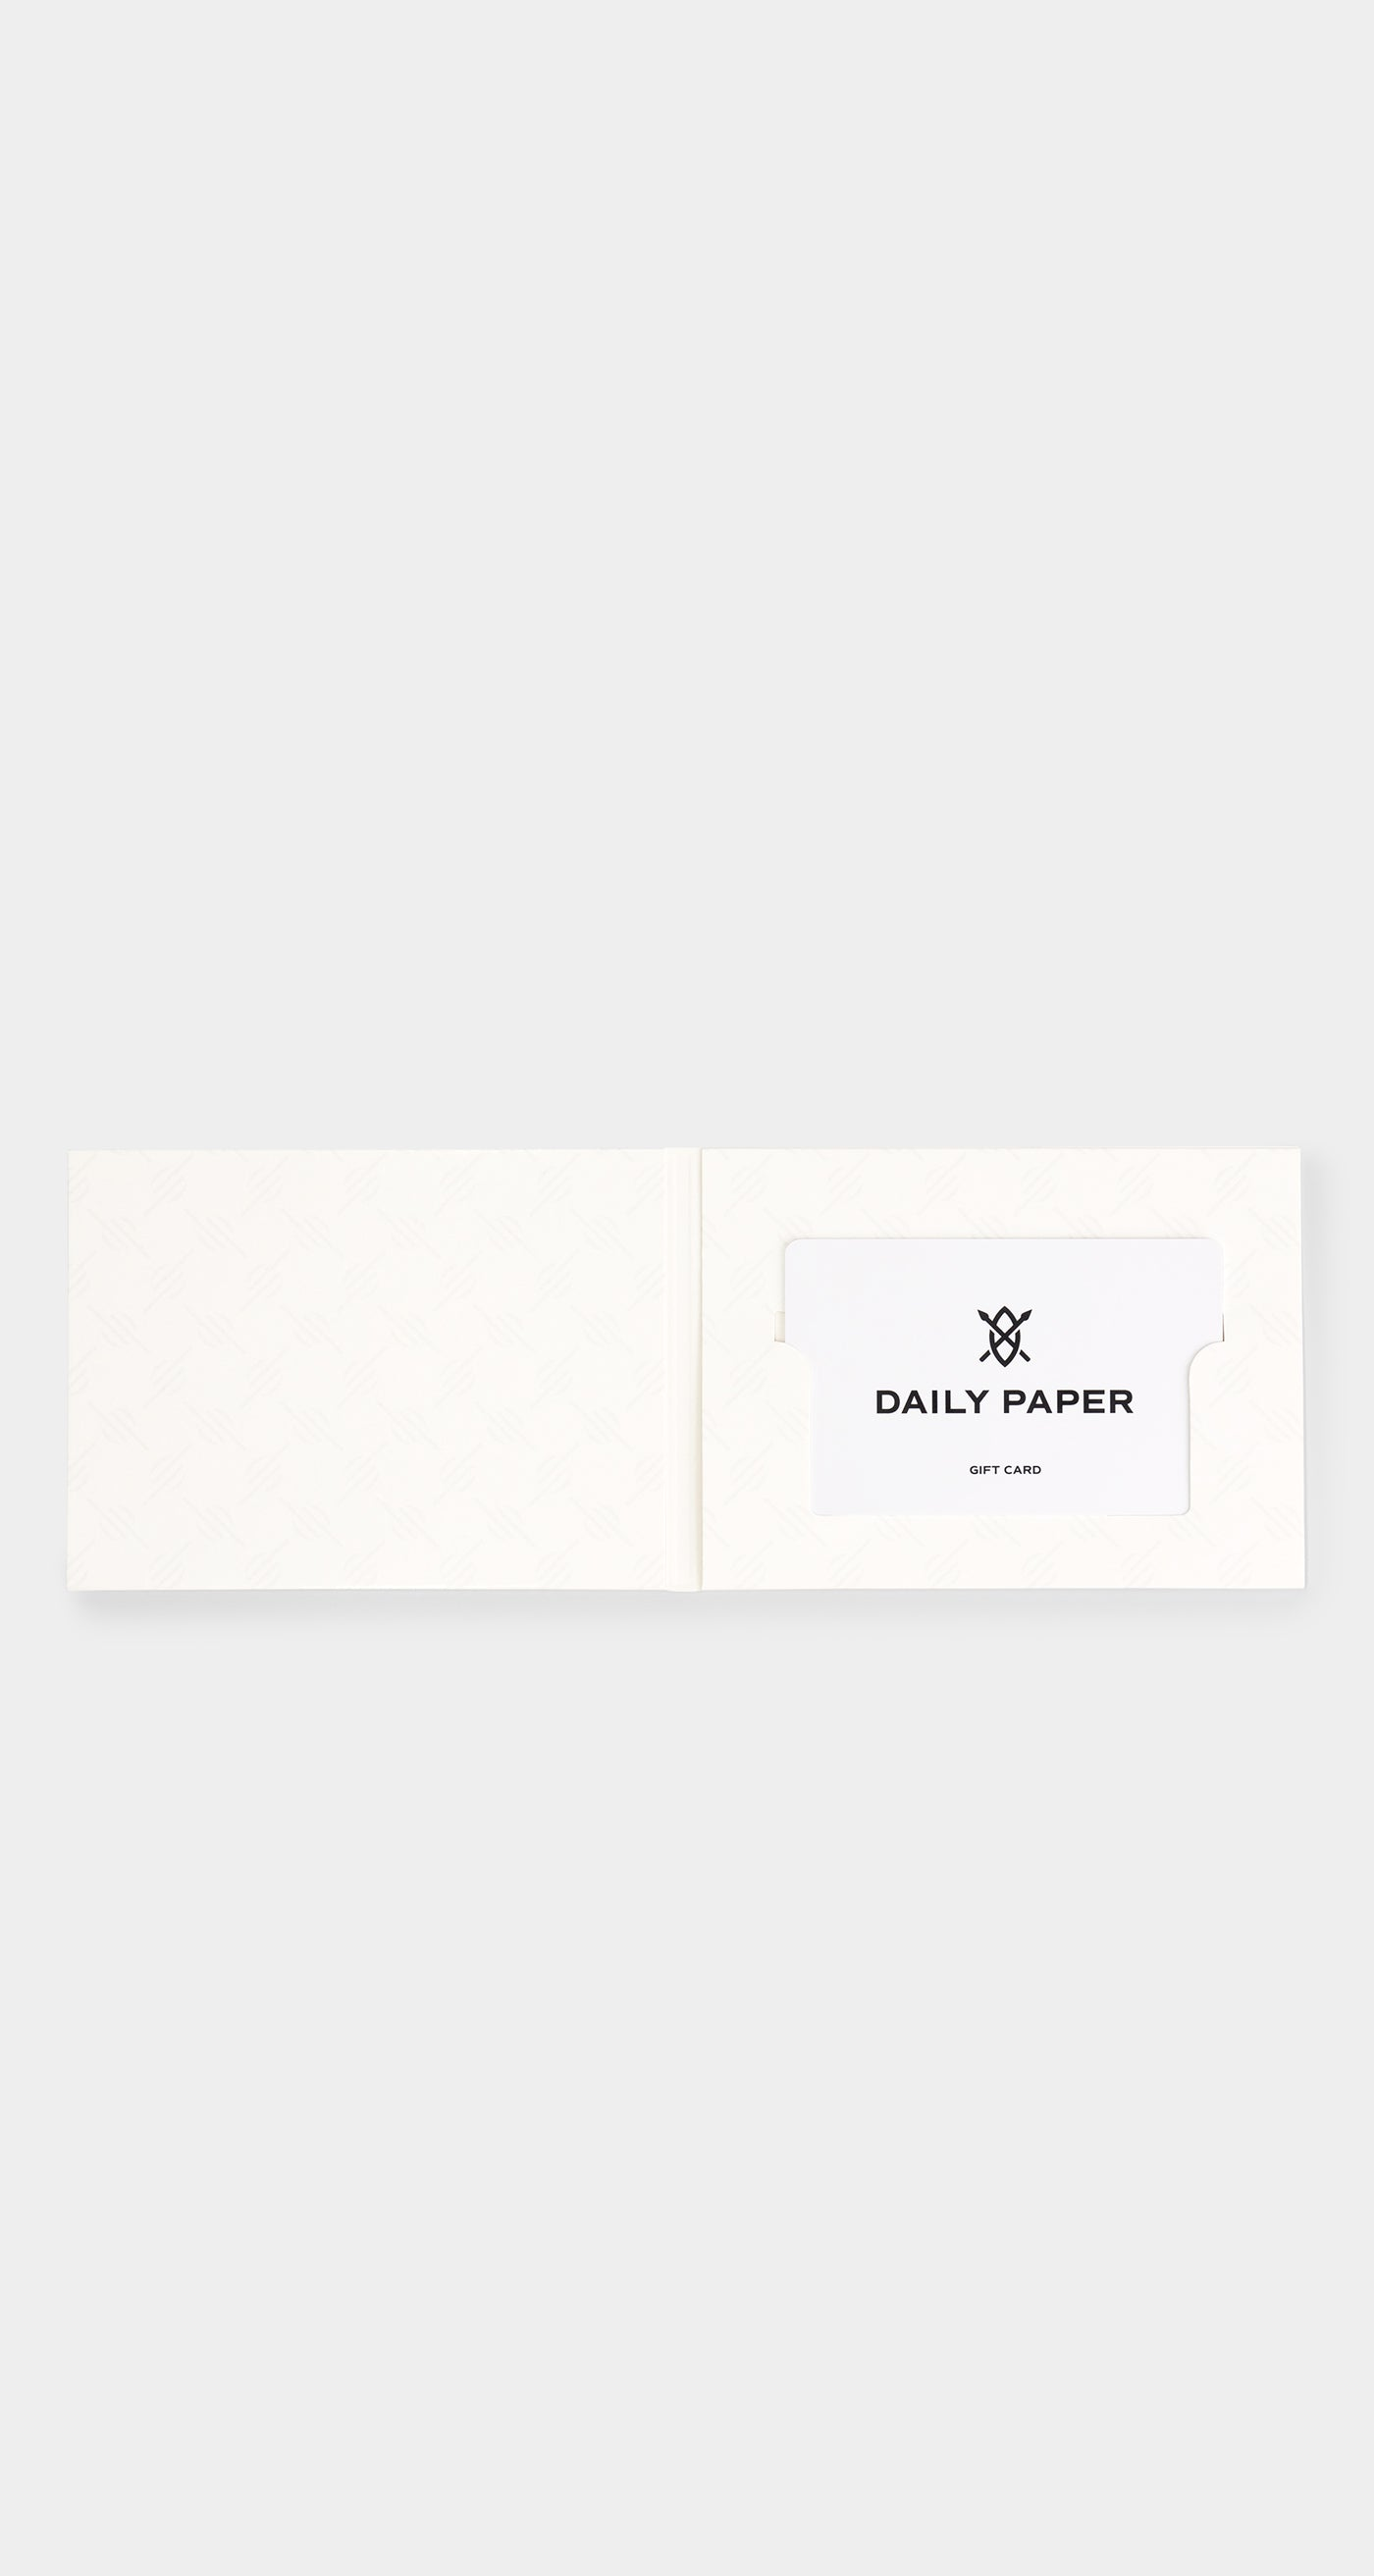 Daily Paper - Gift Card - Rear